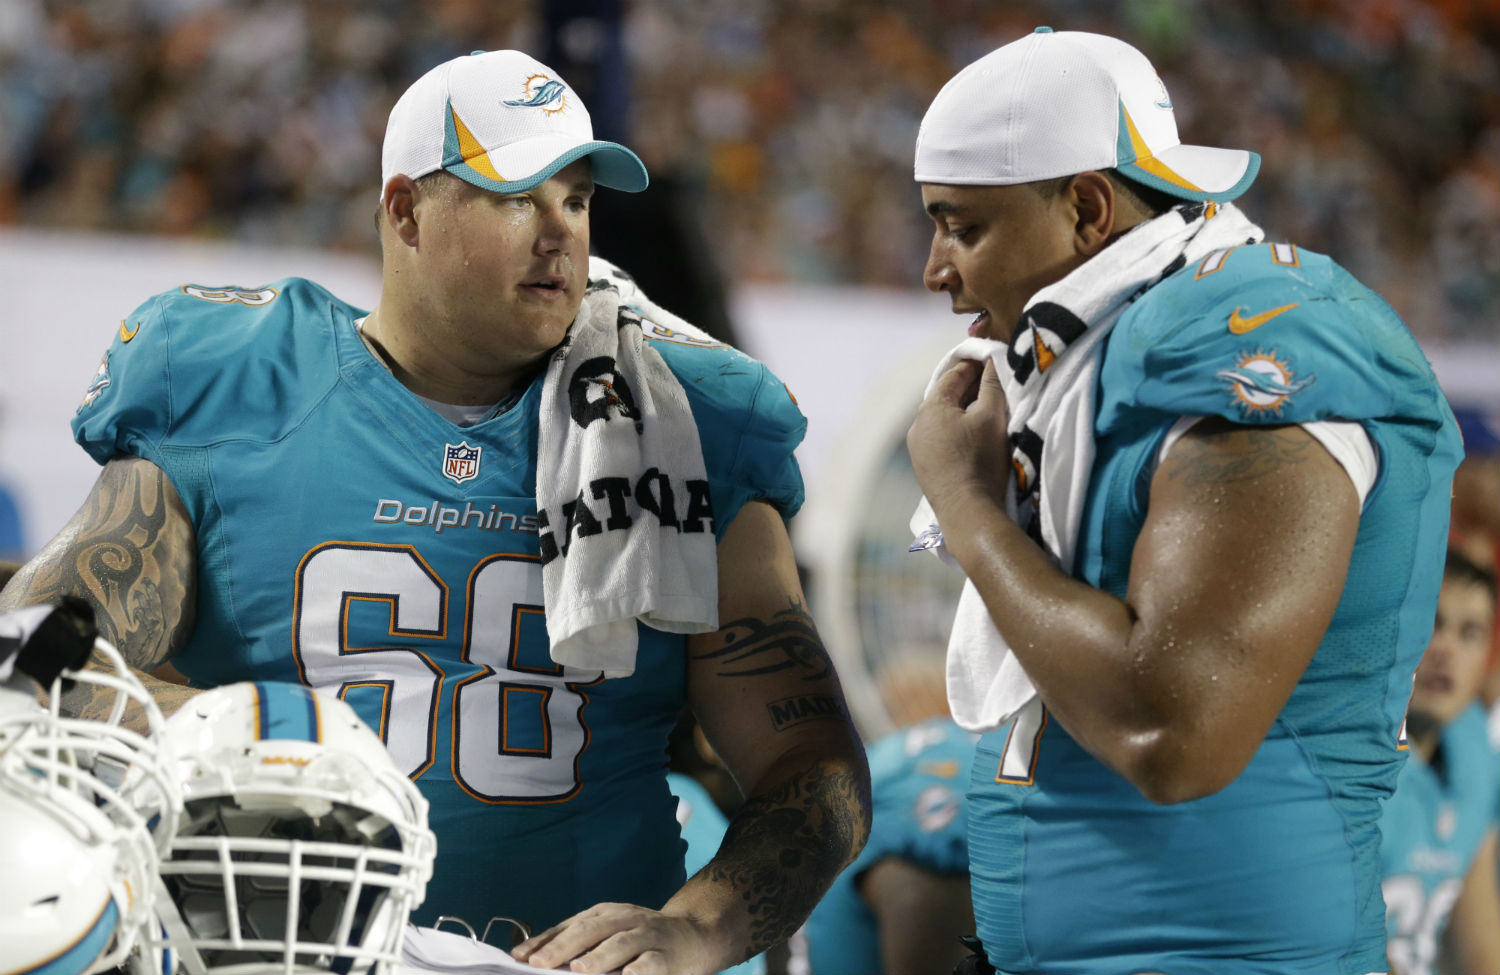 pMiami-Dolphins-guard-Richie-Incognito-left-and-tackle-Jonathan-Martin-rightp